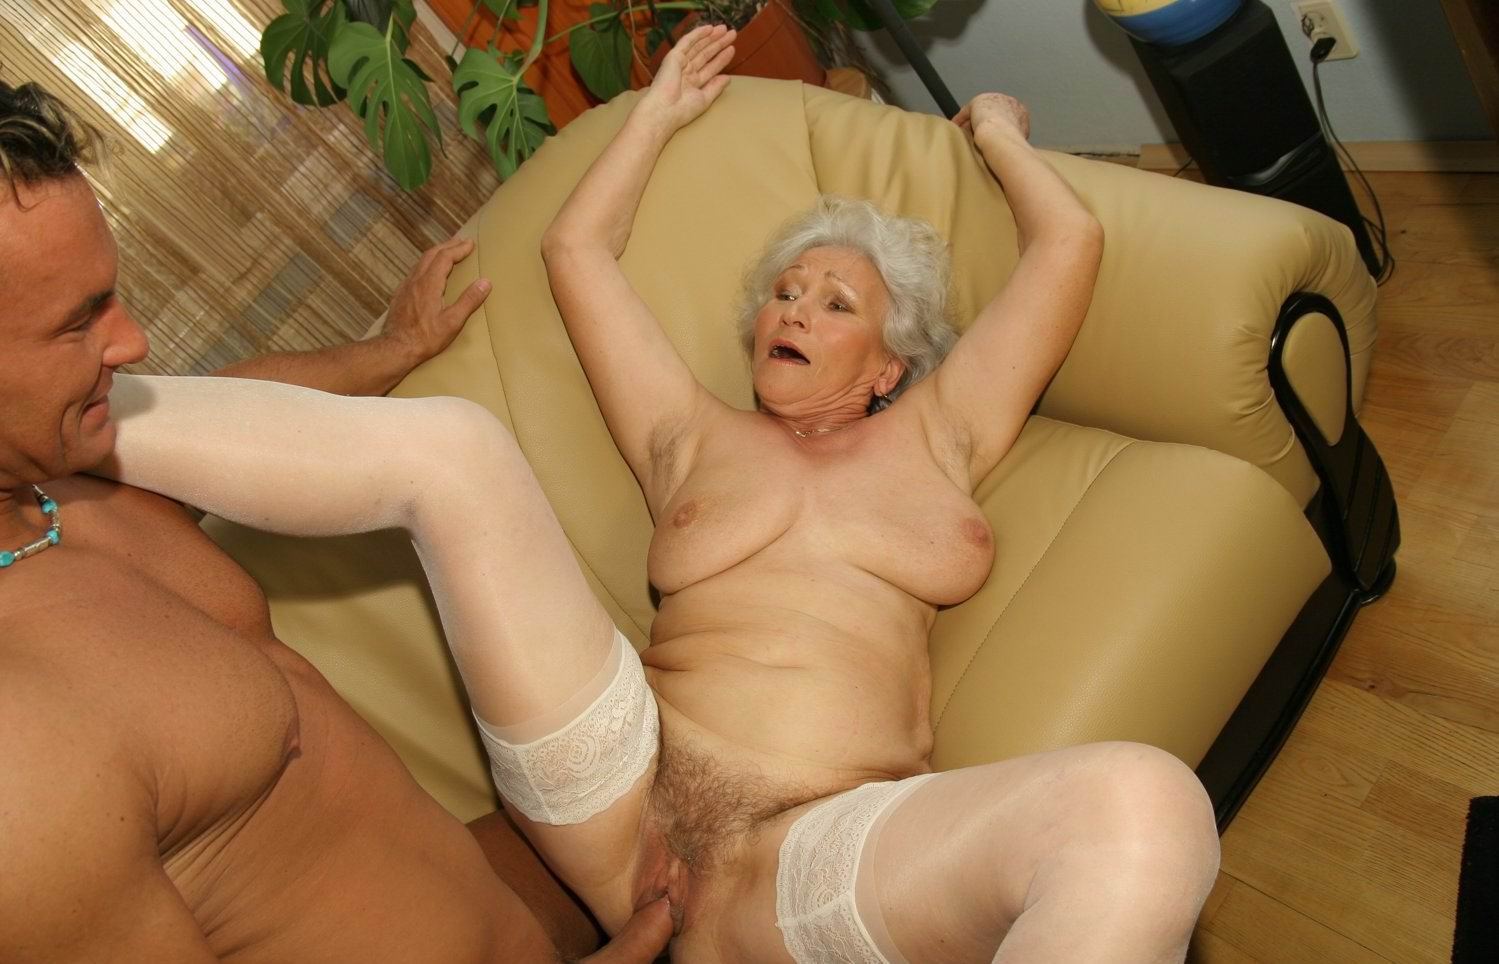 Girl porno sex very old woman sex pokemon